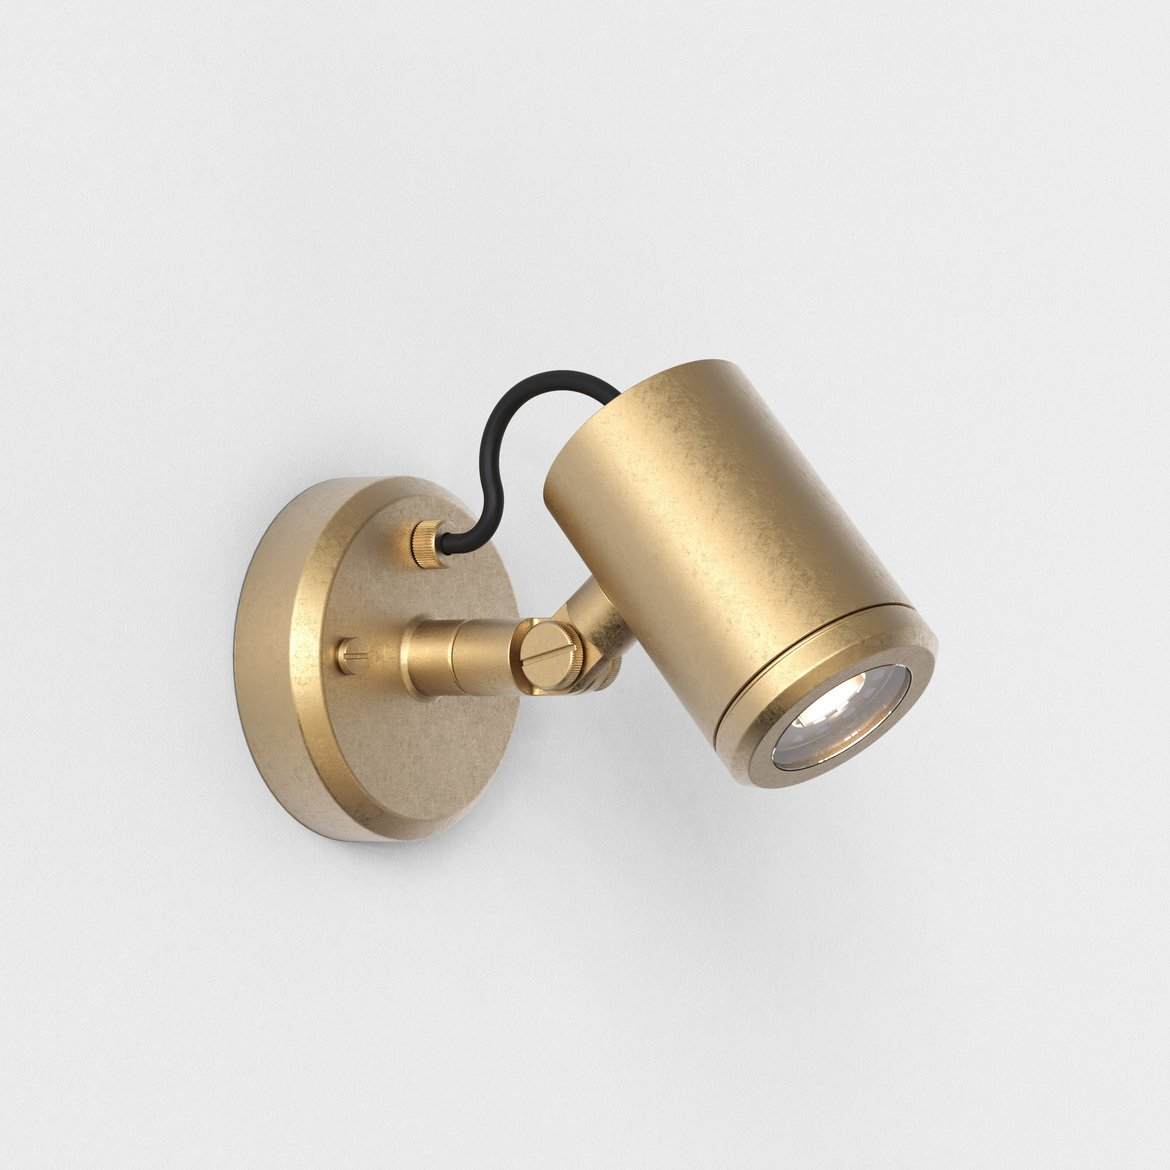 Astro Lighting 1375008 Jura Single Spot Brass Wall Light